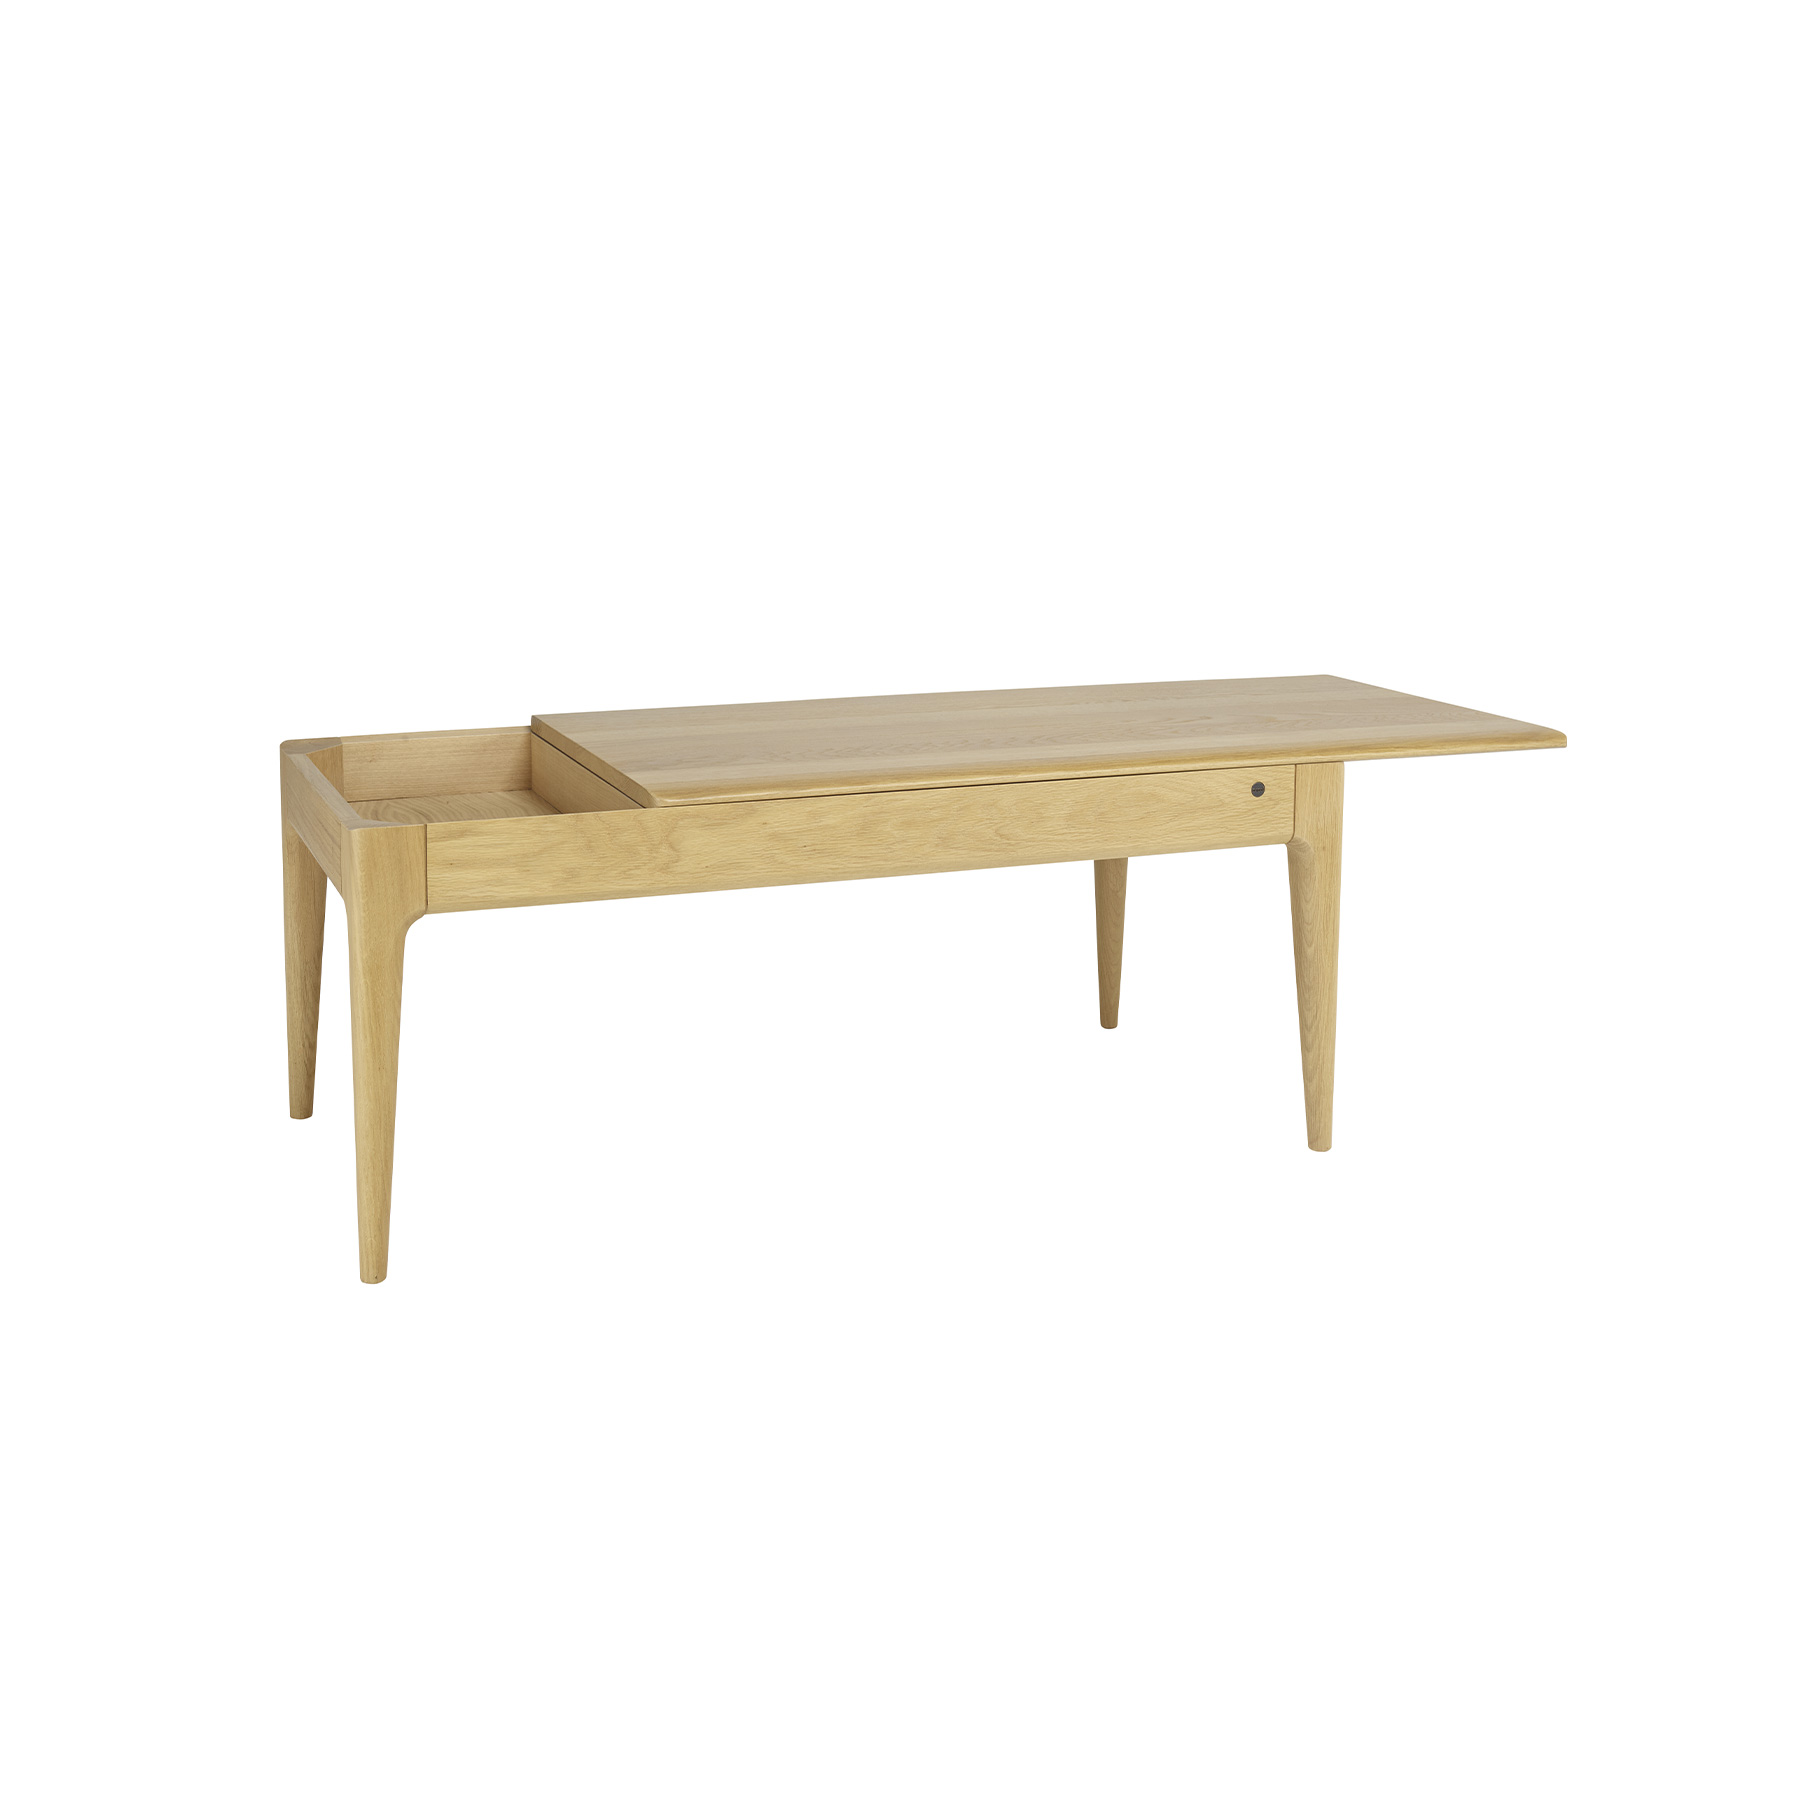 Romana Coffee Table - <p>Romana is a modern dining and living-room furniture collection with soft curves and sophisticated craftsmanship that emphasises ercol's skill in working with solid timber.  Romana is made from pale oak and finished in a clear matt lacquer to both protect the timber and show off its beauty. This oak coffee table has a secret... the top slides back to reveal a hidden recess, ideal for keeping your remote controls or your tablet in.  The front edge of the table top bears the signature soft curve, and the legs have the fluid organic curves and chamfers that, characterise Romana. This oak furniture is finished in a clear matt lacquer to show the beauty of the natural timber.</p>  | Matter of Stuff